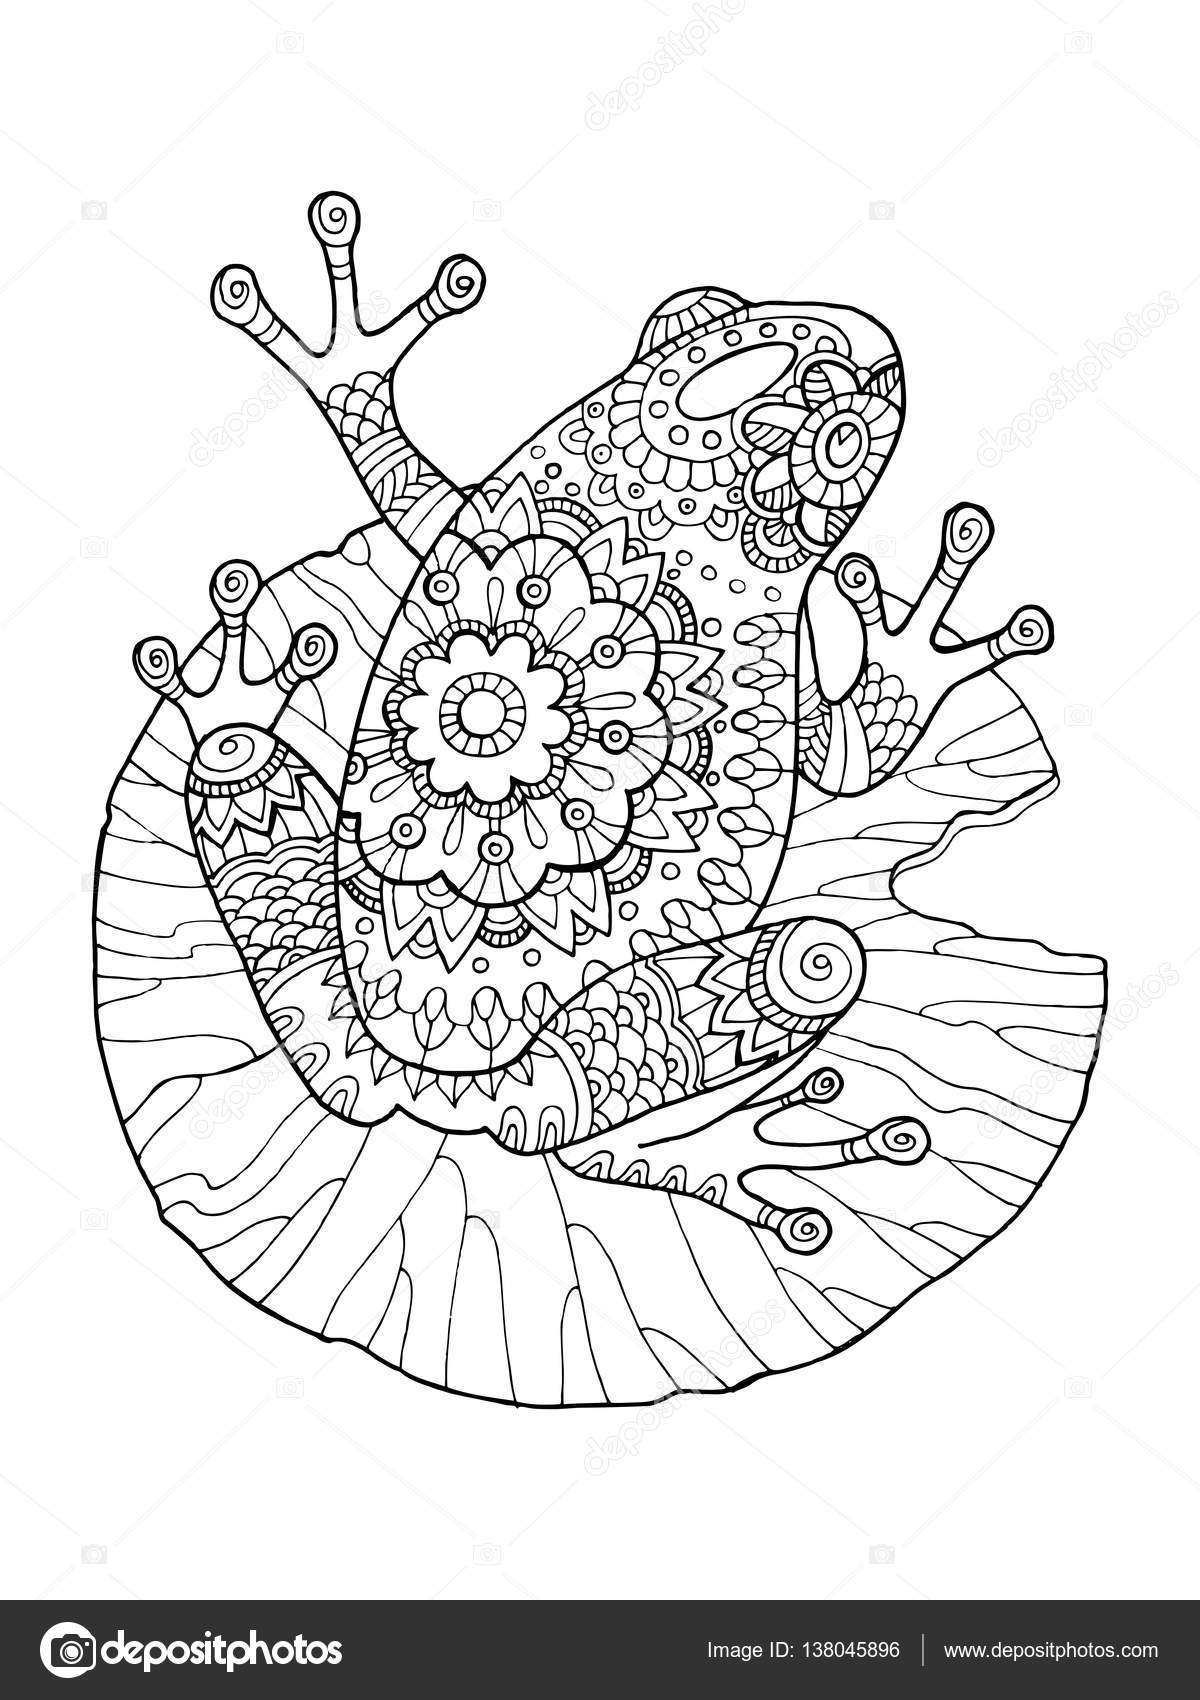 Grenouille illustration vectorielle livre à colorier — Image ...